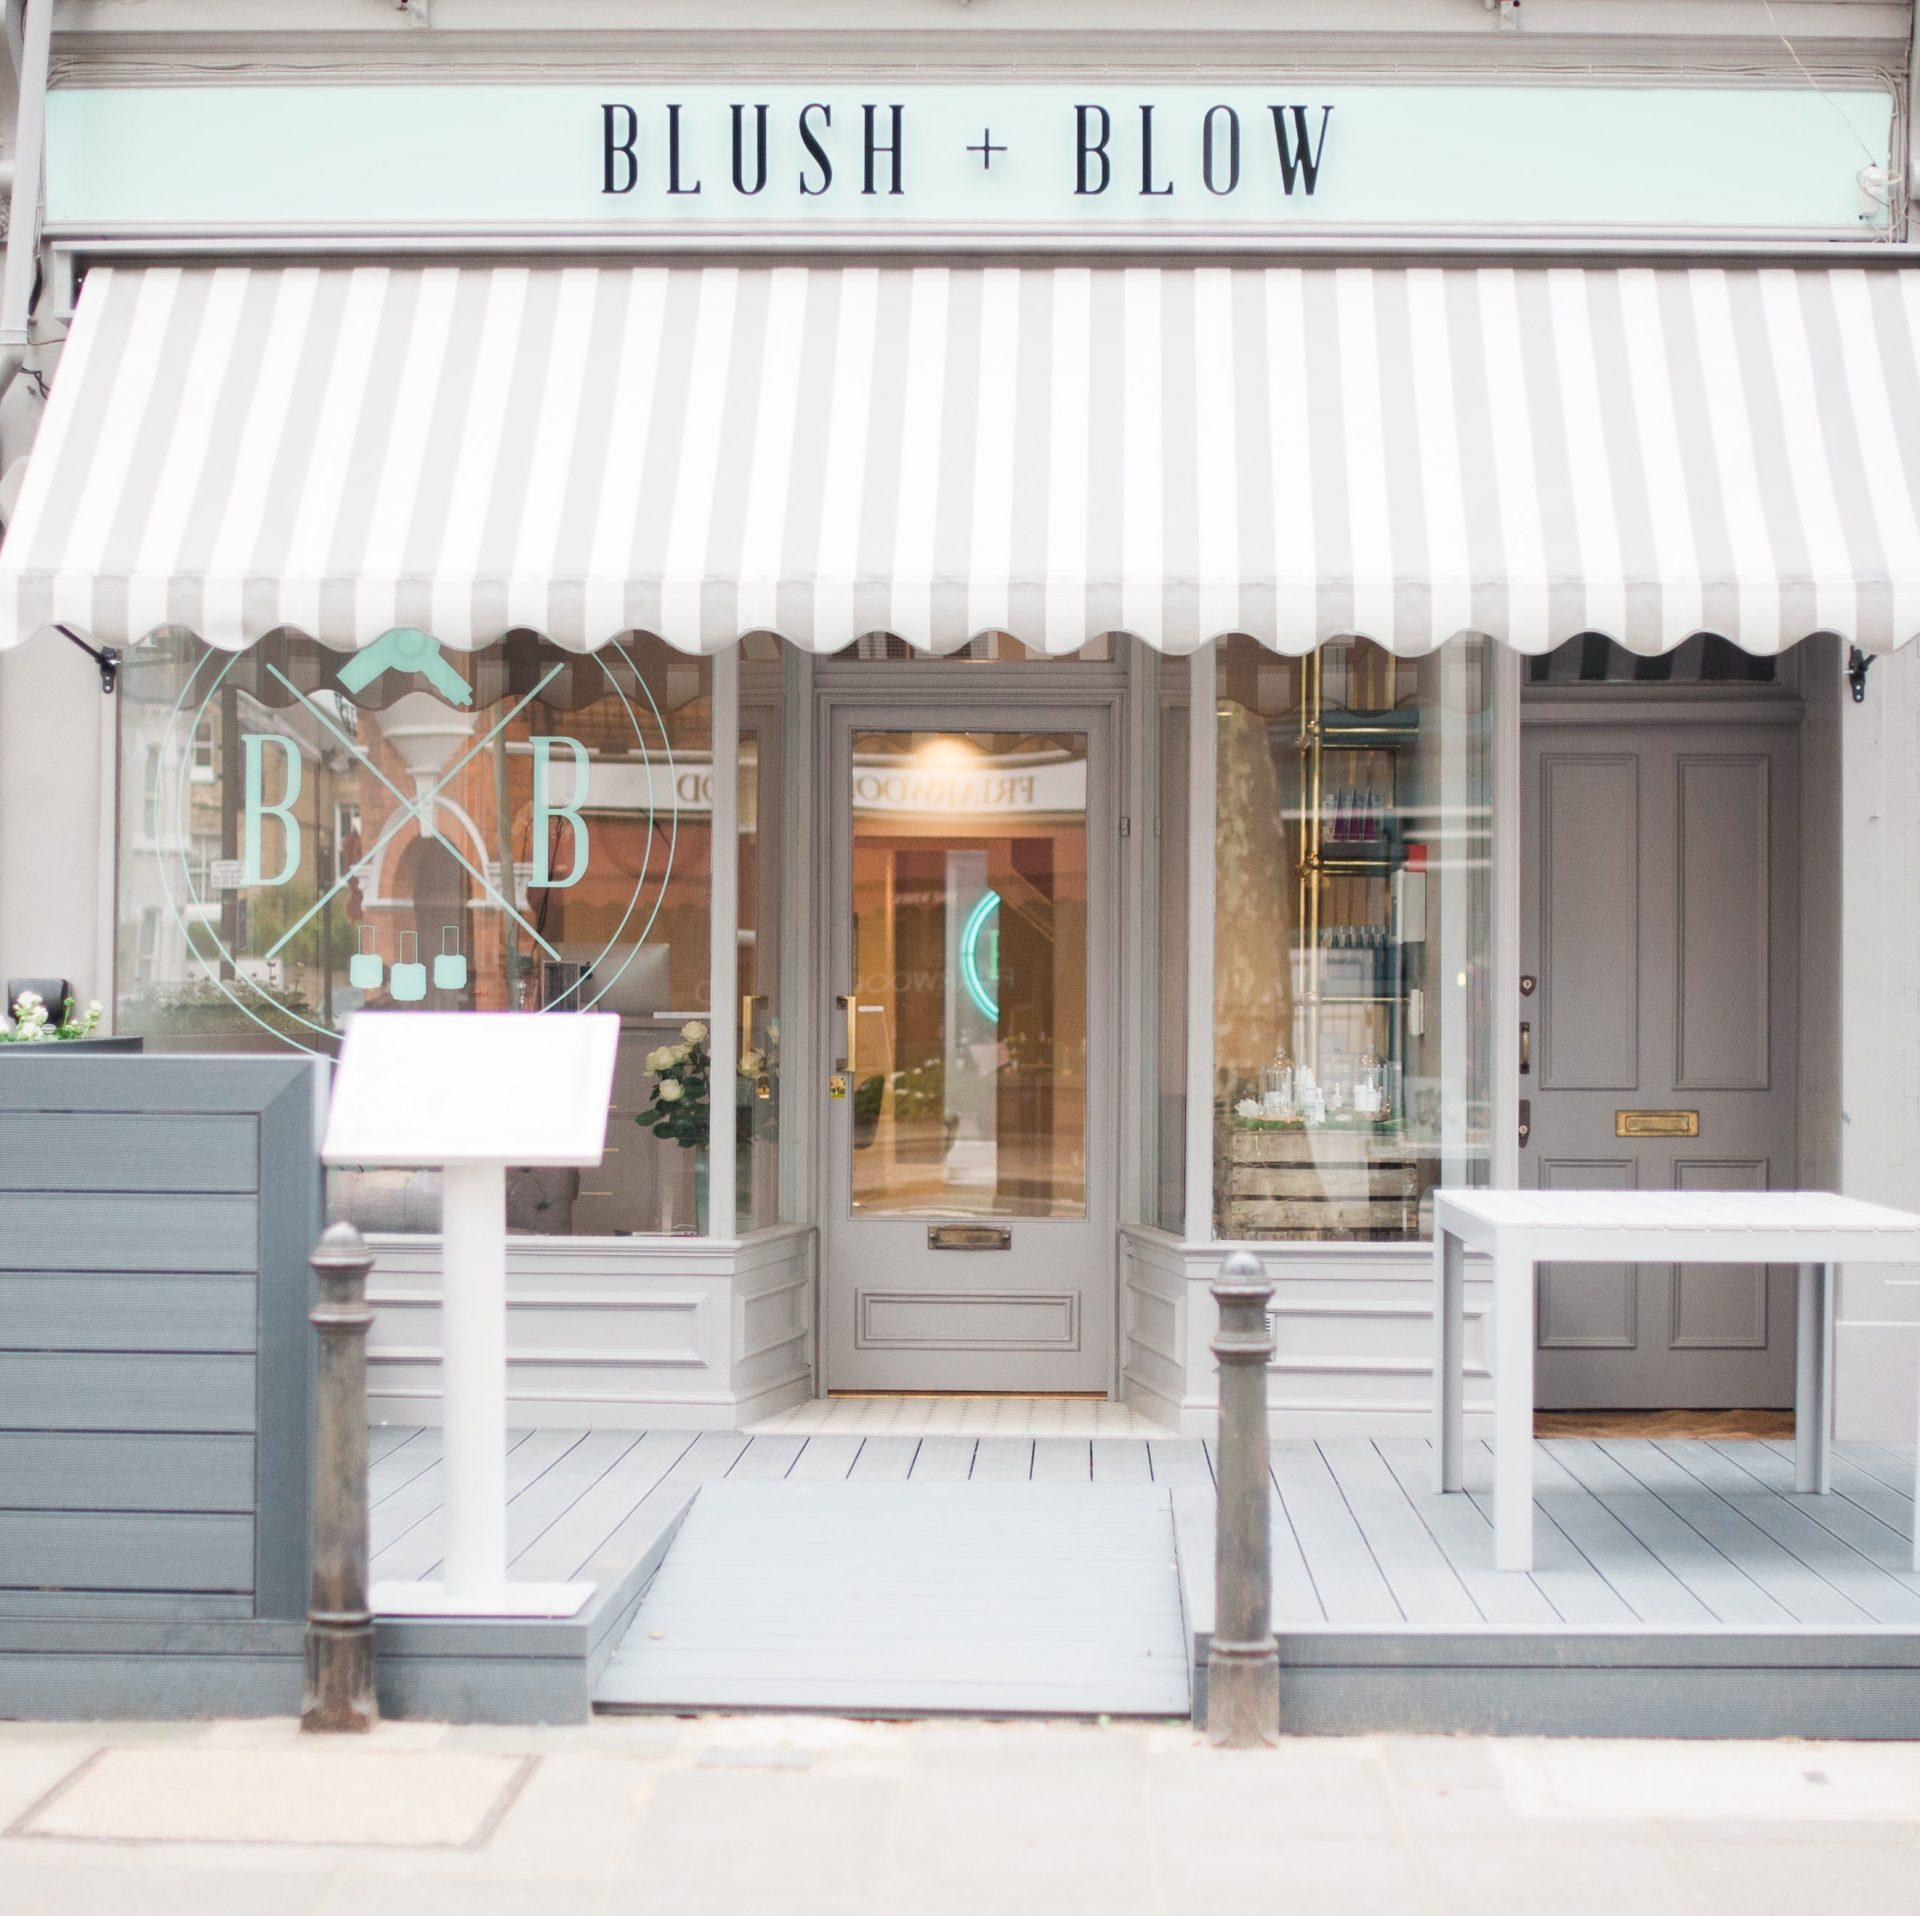 The front of blush and blow